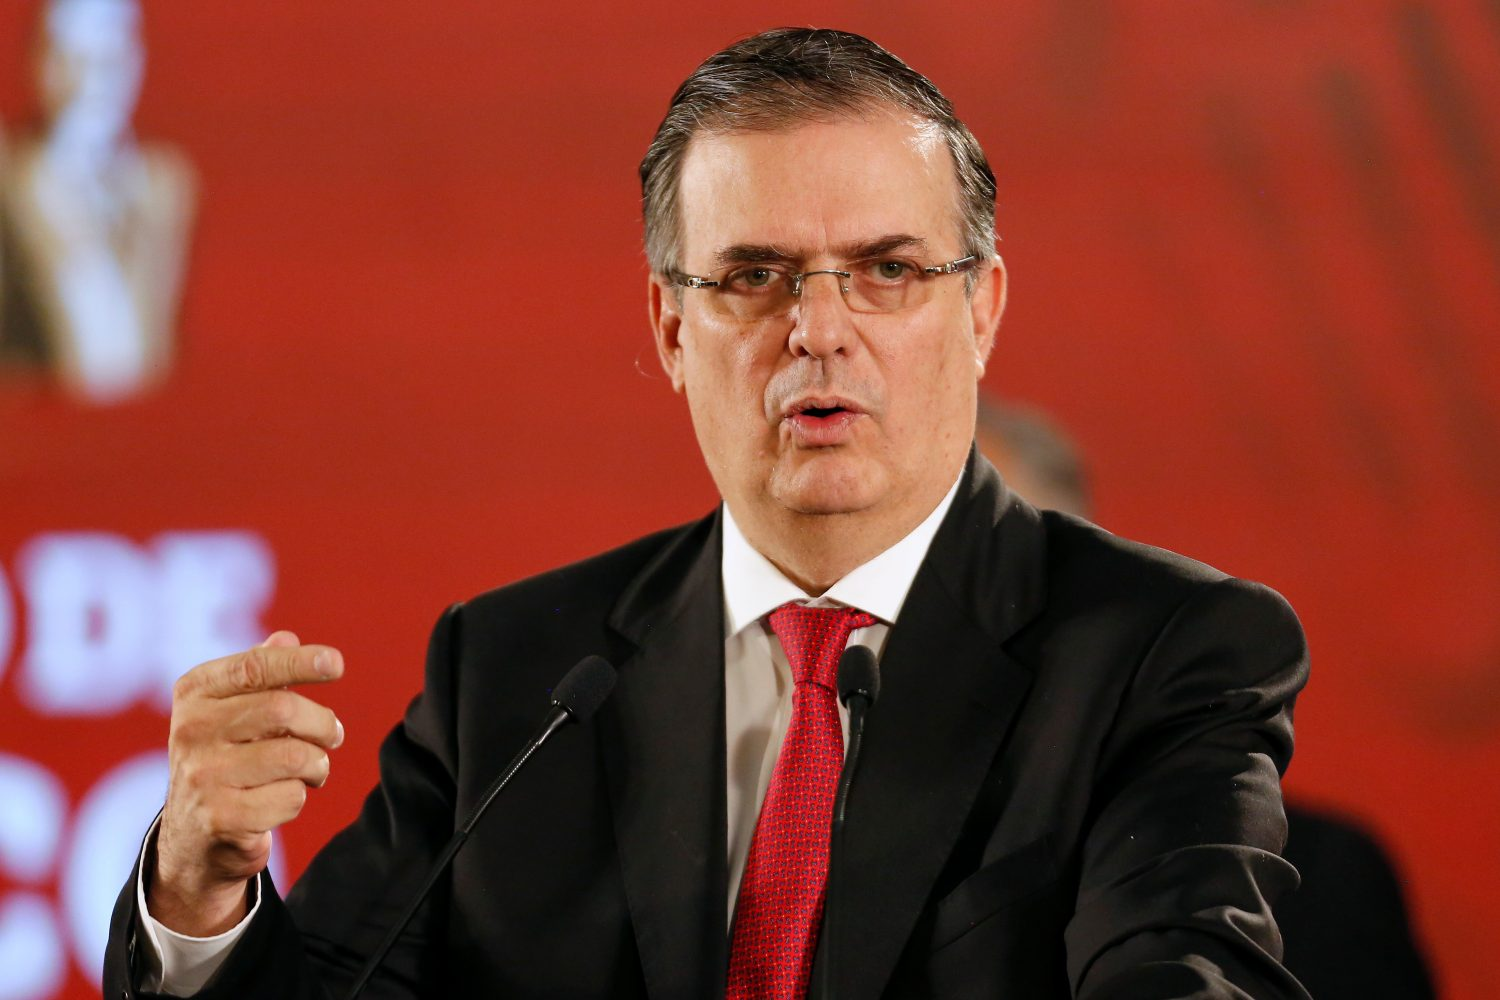 FILE PHOTO: Mexico's Foreign Minister Marcelo Ebrard speaks during a news conference at the National Palace in Mexico City, Mexico June 10, 2019. REUTERS/Gustavo Graf